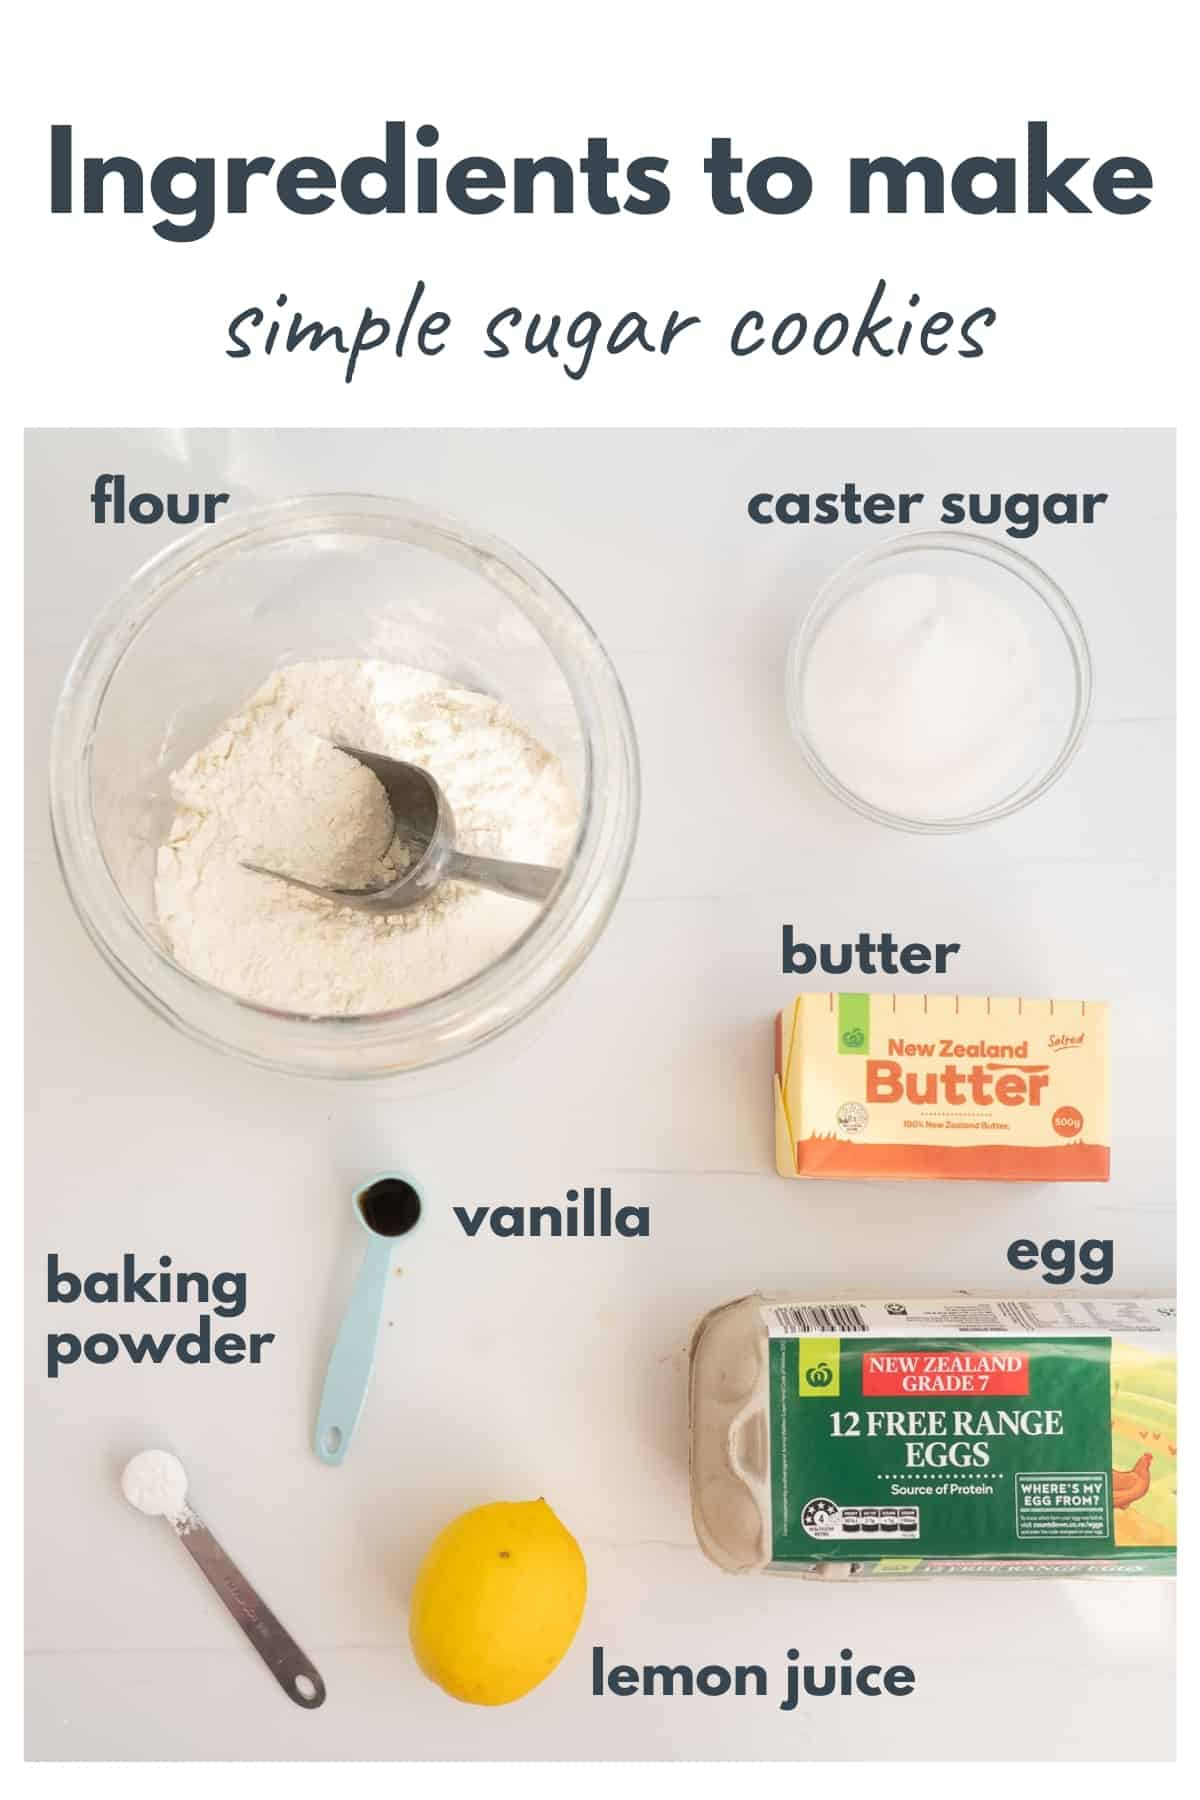 The ingredients to make simple sugar cookies laid out on a bench top with text overlay.